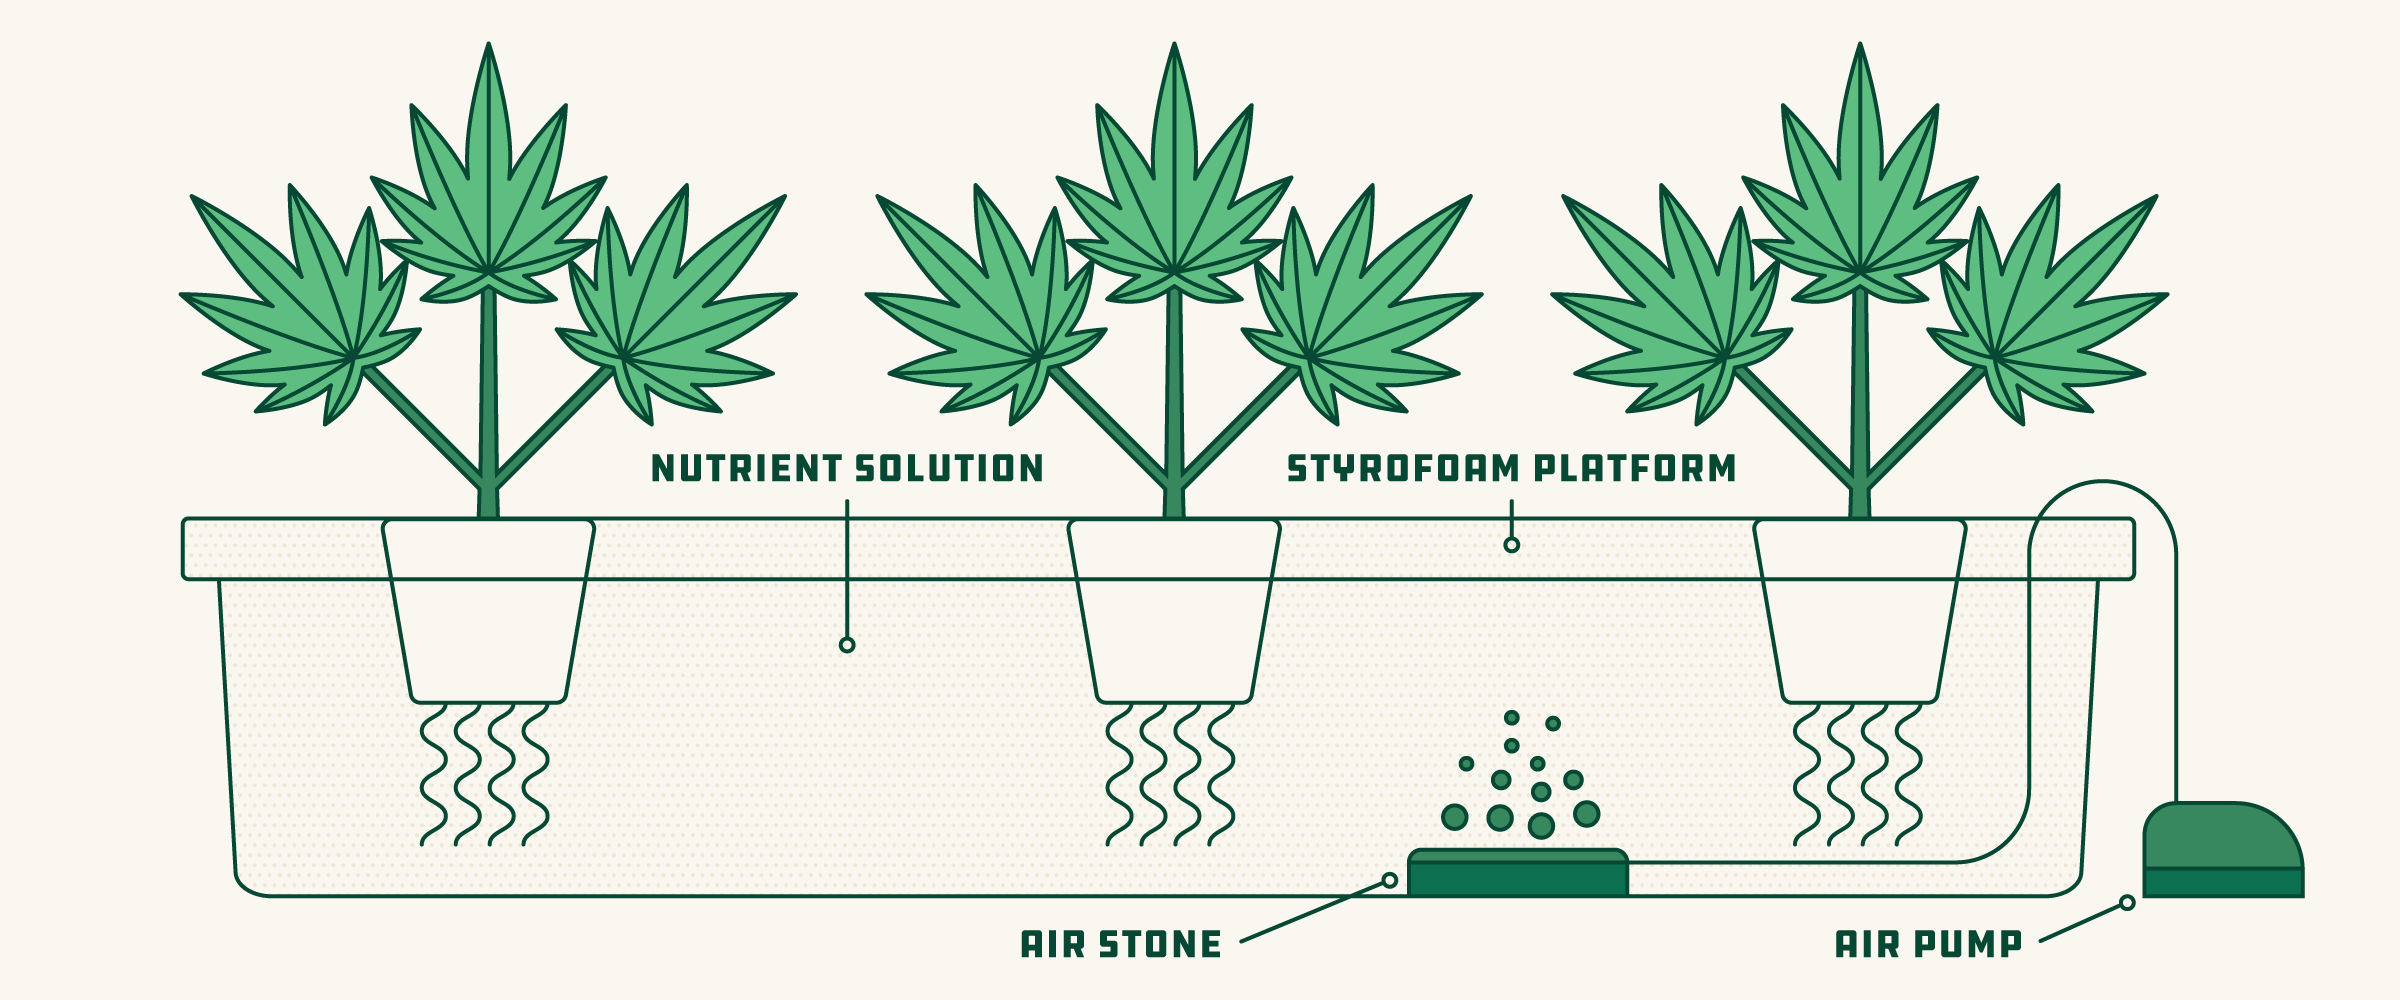 How to Set Up a Hydroponic Grow System for Cannabis - March 2019